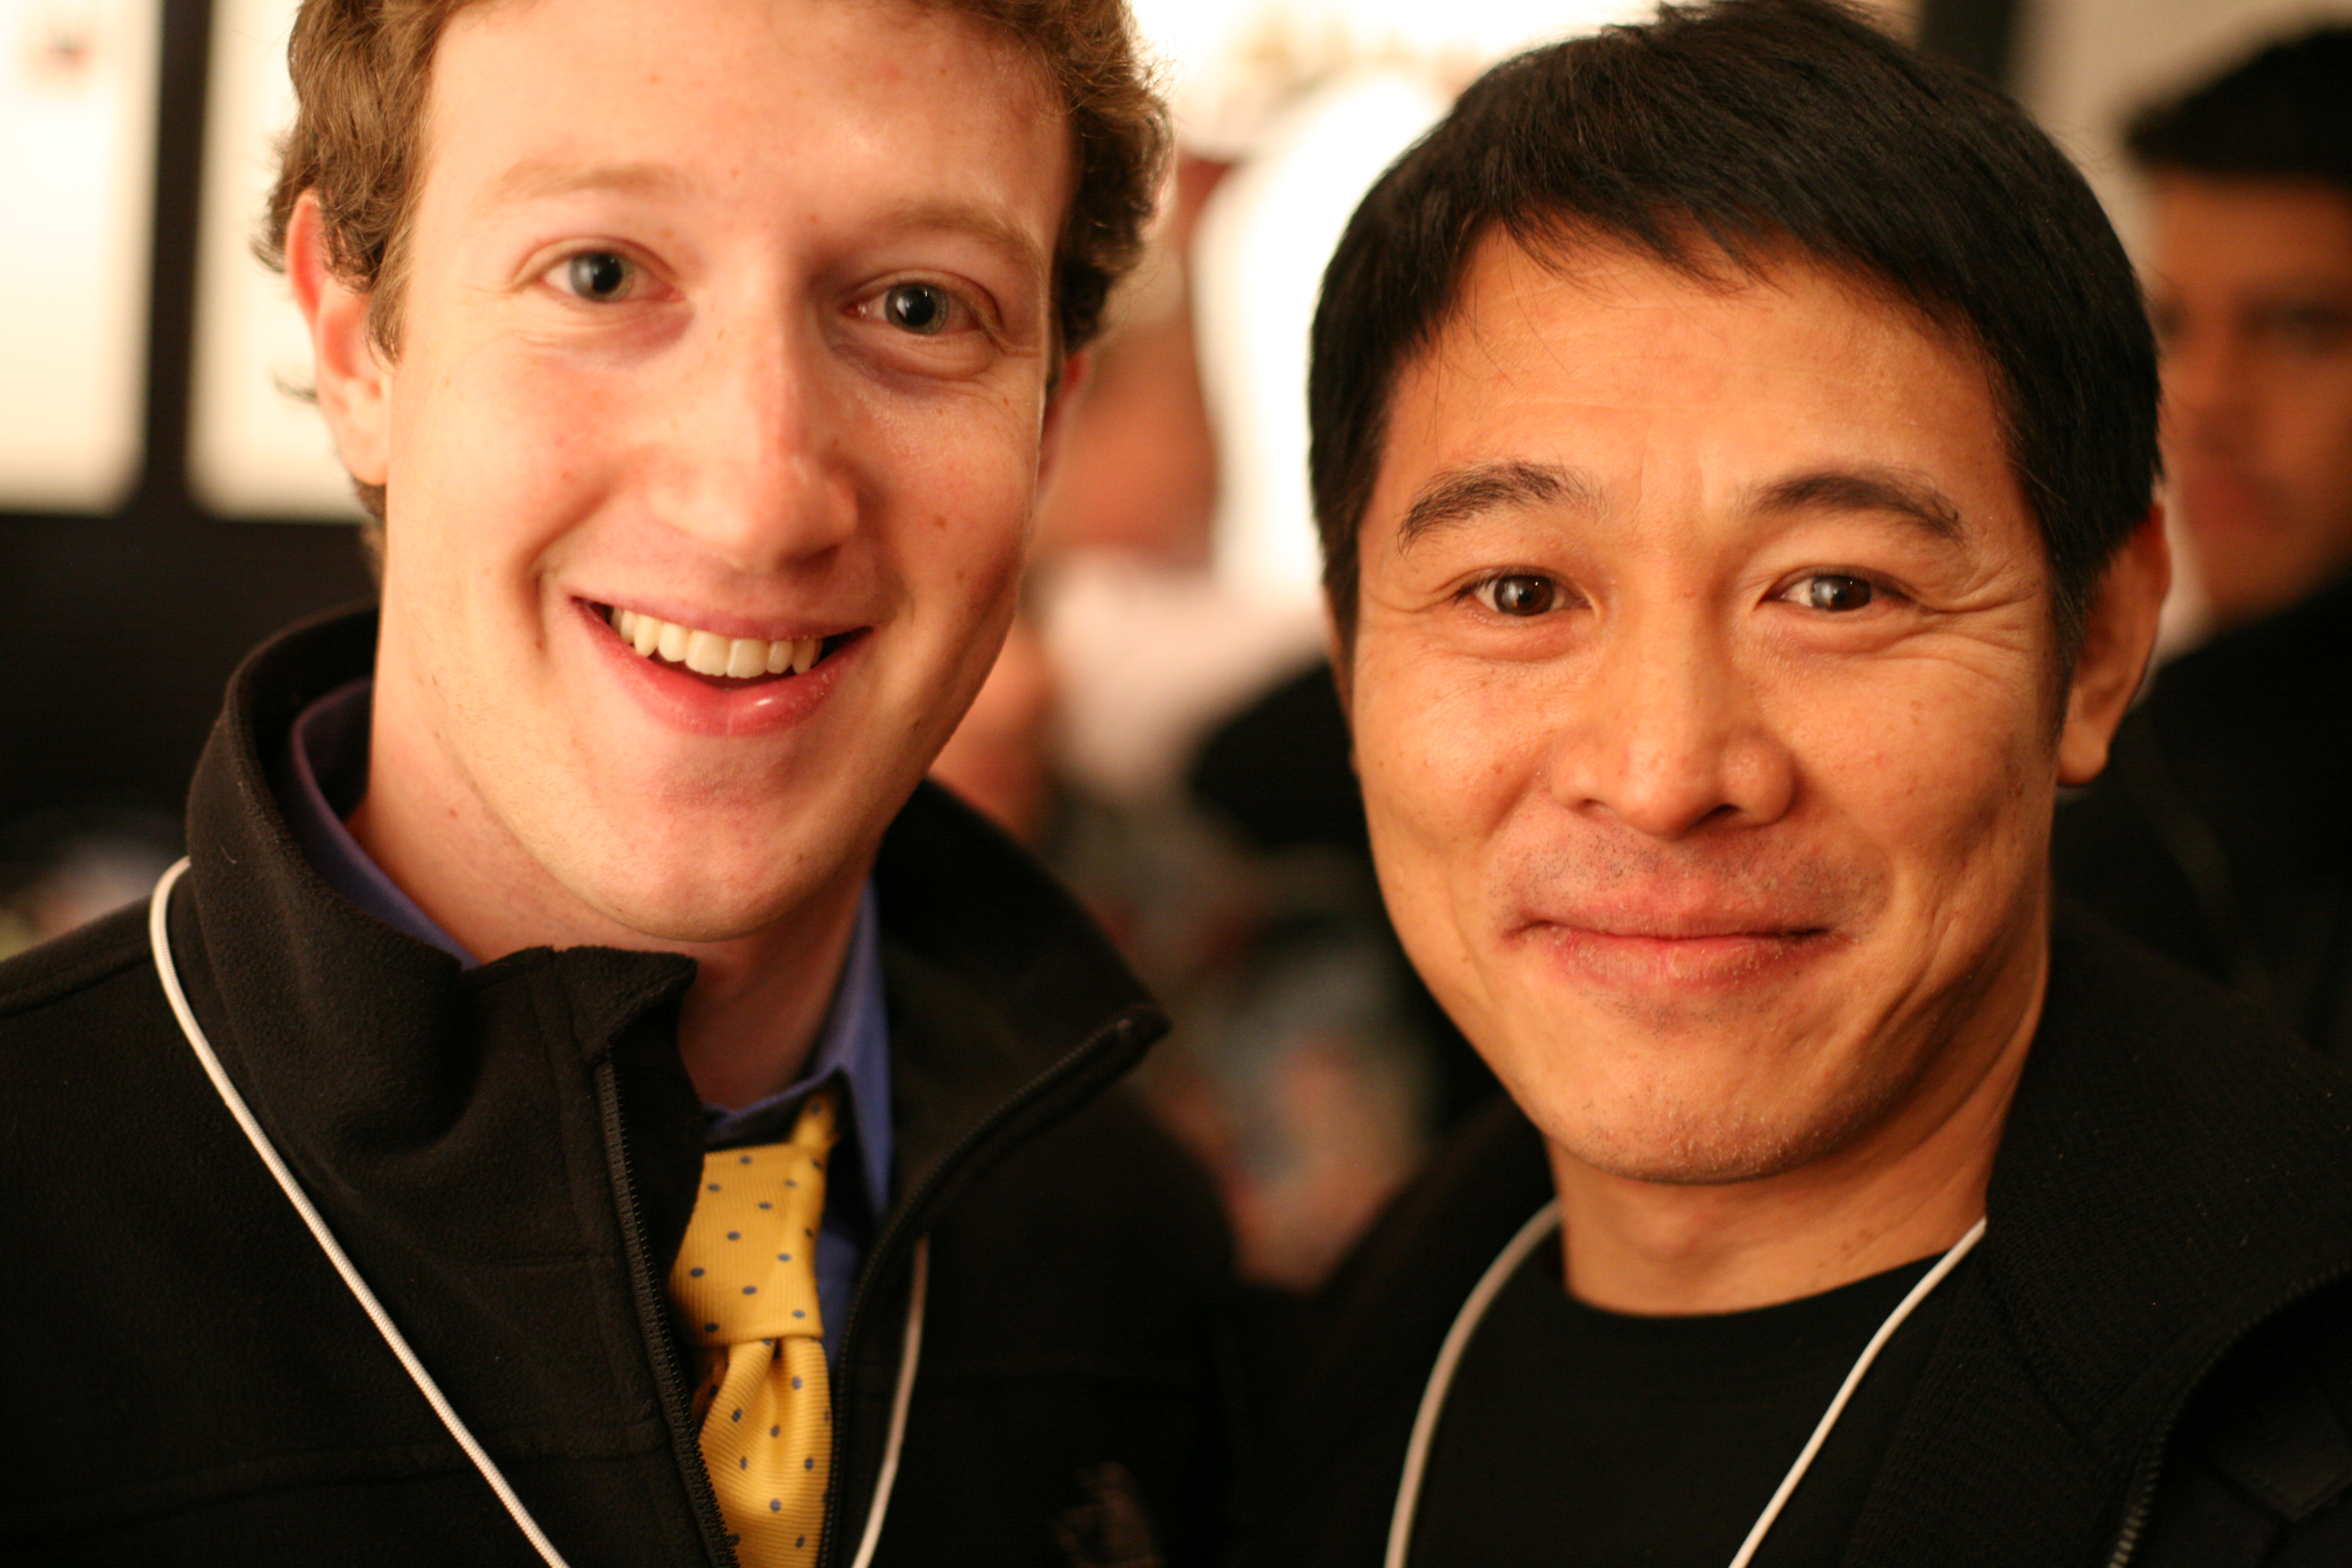 File:Mark Zuckerberg, founder Facebook, and Jet Li, famous martial